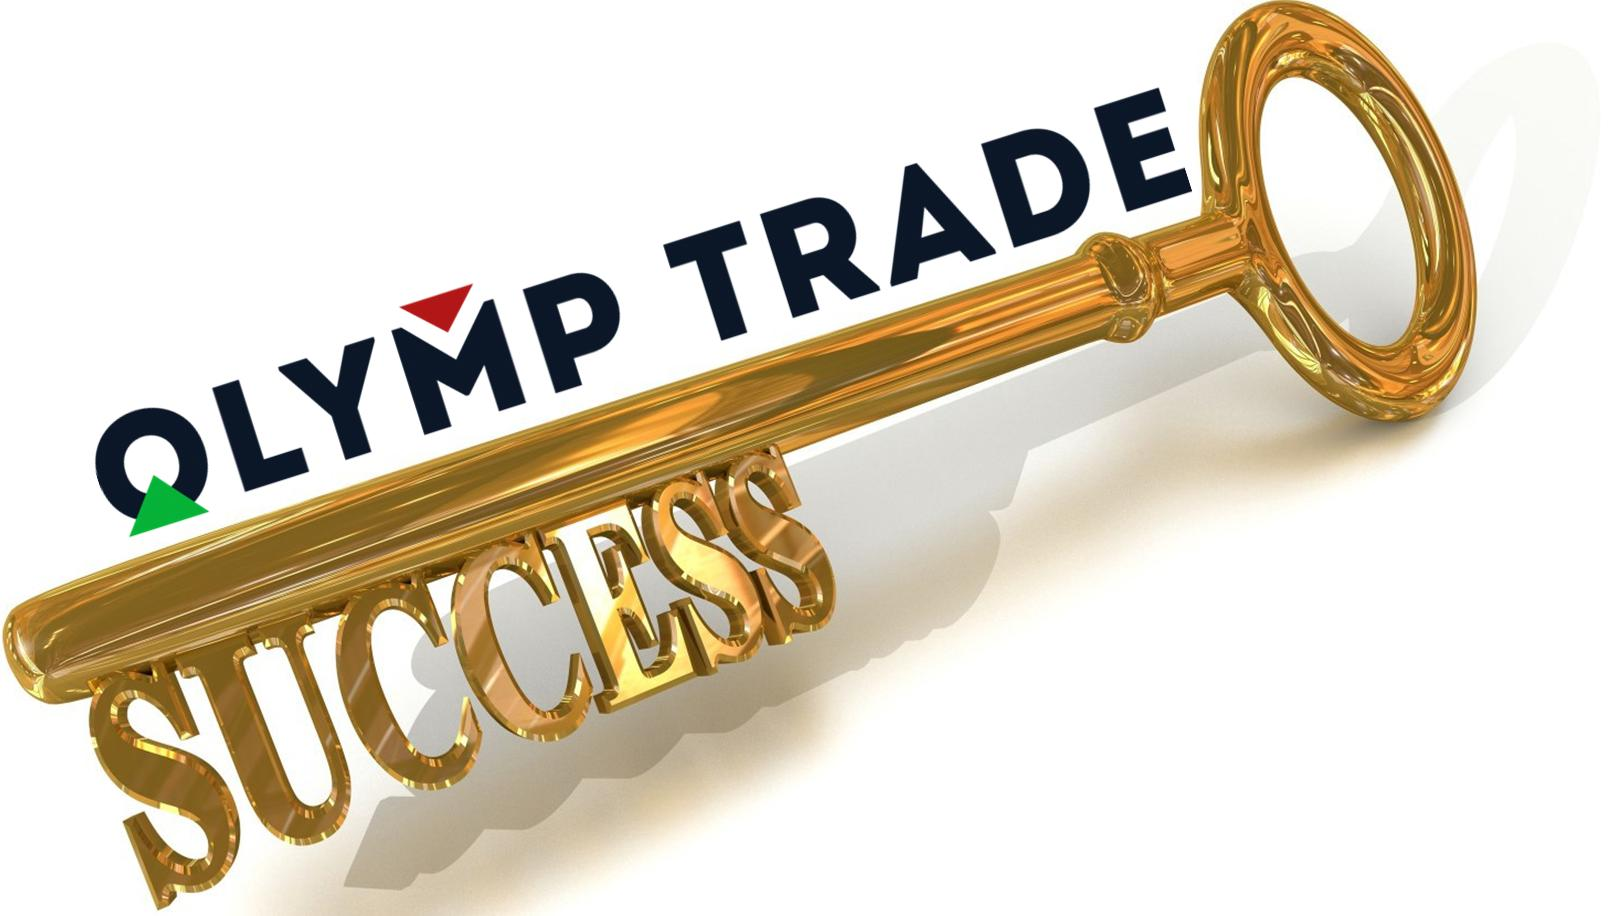 The key to success in Olymptrade